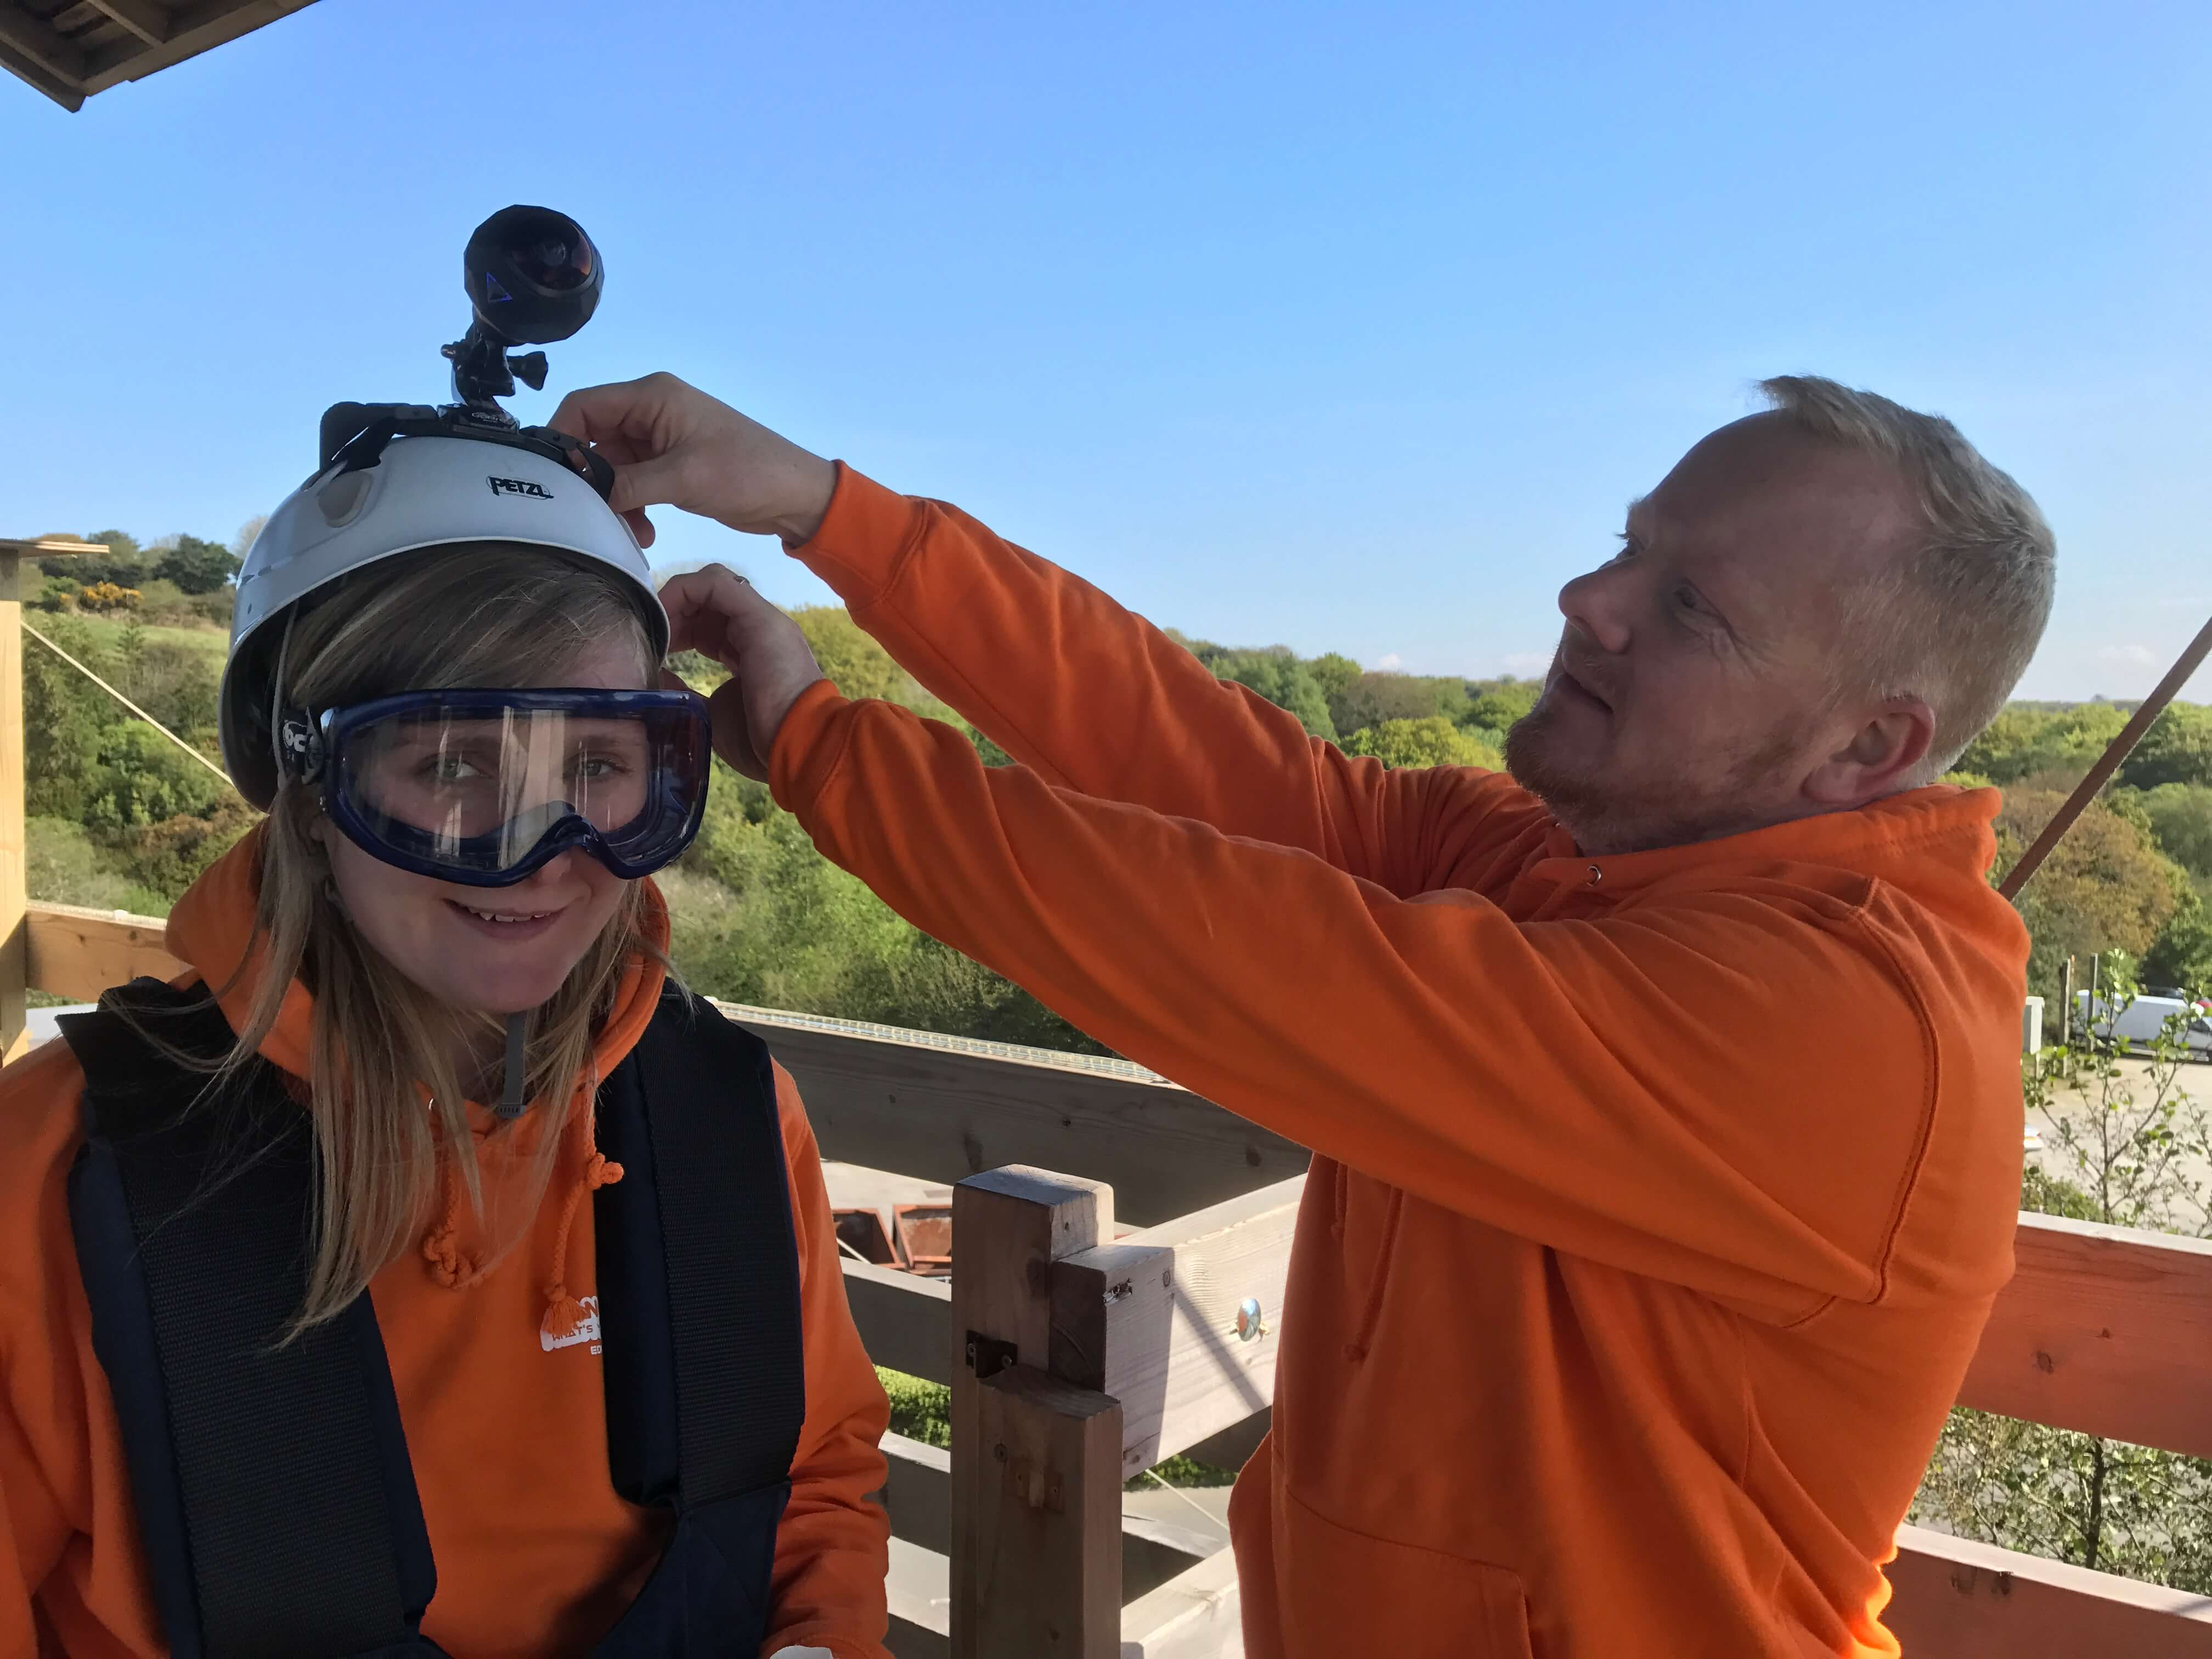 Promotional video production Hangloose Cornwall creating 360 VR tour. Gareth attaching a GoPro on to a participant's helmet.